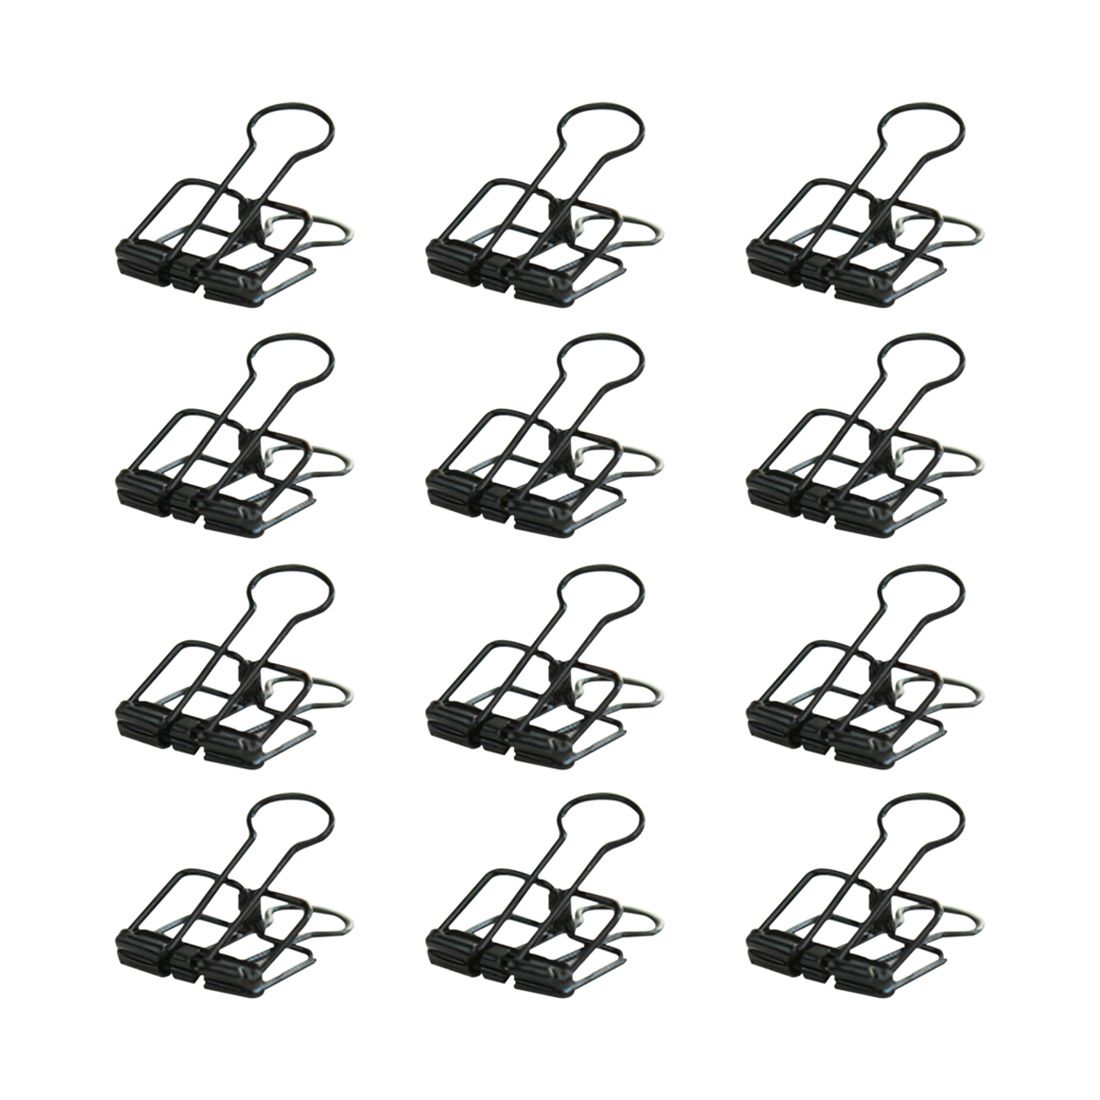 Creative Wire Binder Clips 12 Pcs Reusable Paper Clips